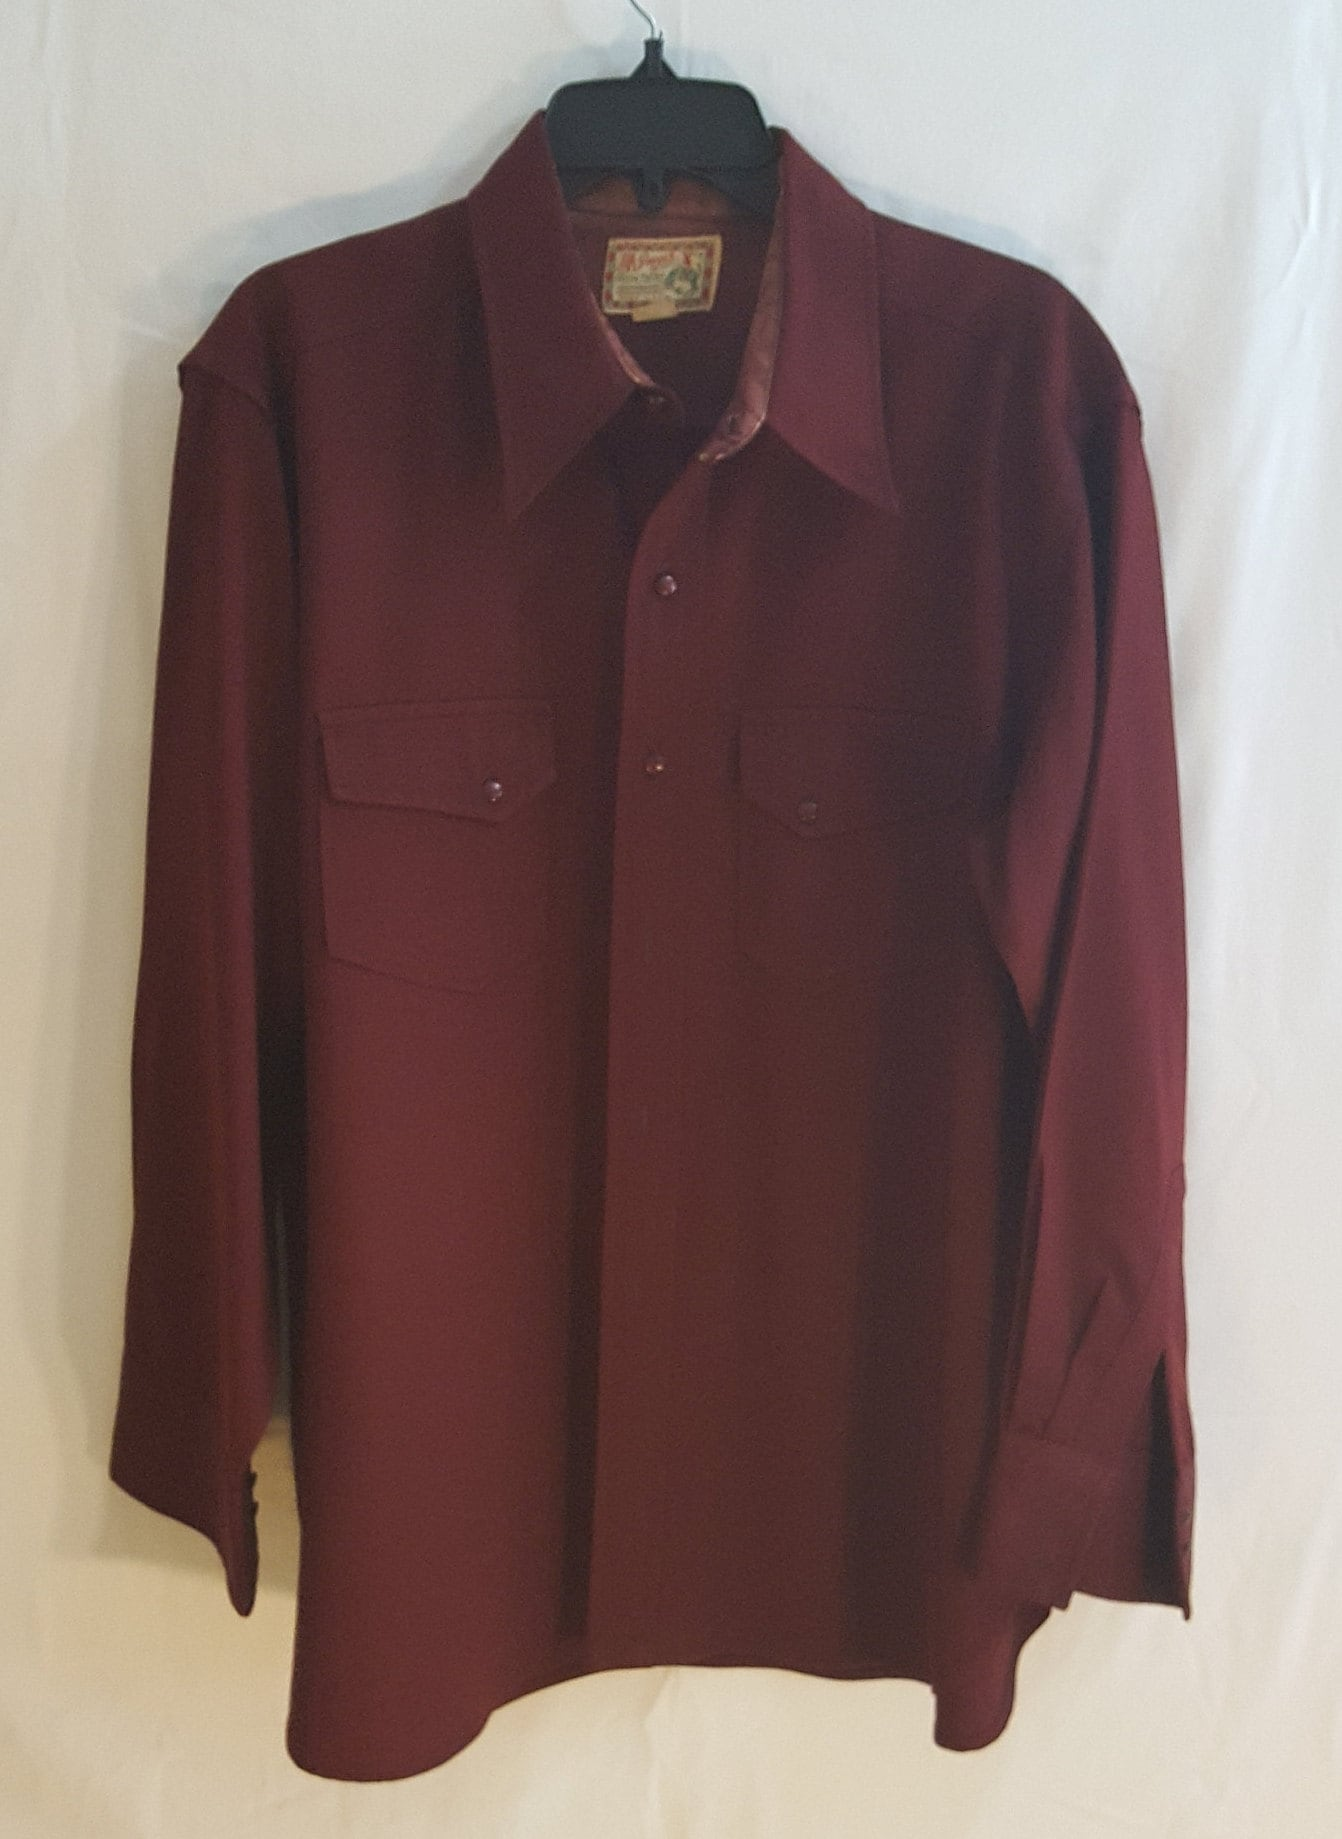 1940s Men's Shirts, Sweaters, Vests 1940S Mens Classic Burgundy Shirt WWestern Style M $23.33 AT vintagedancer.com